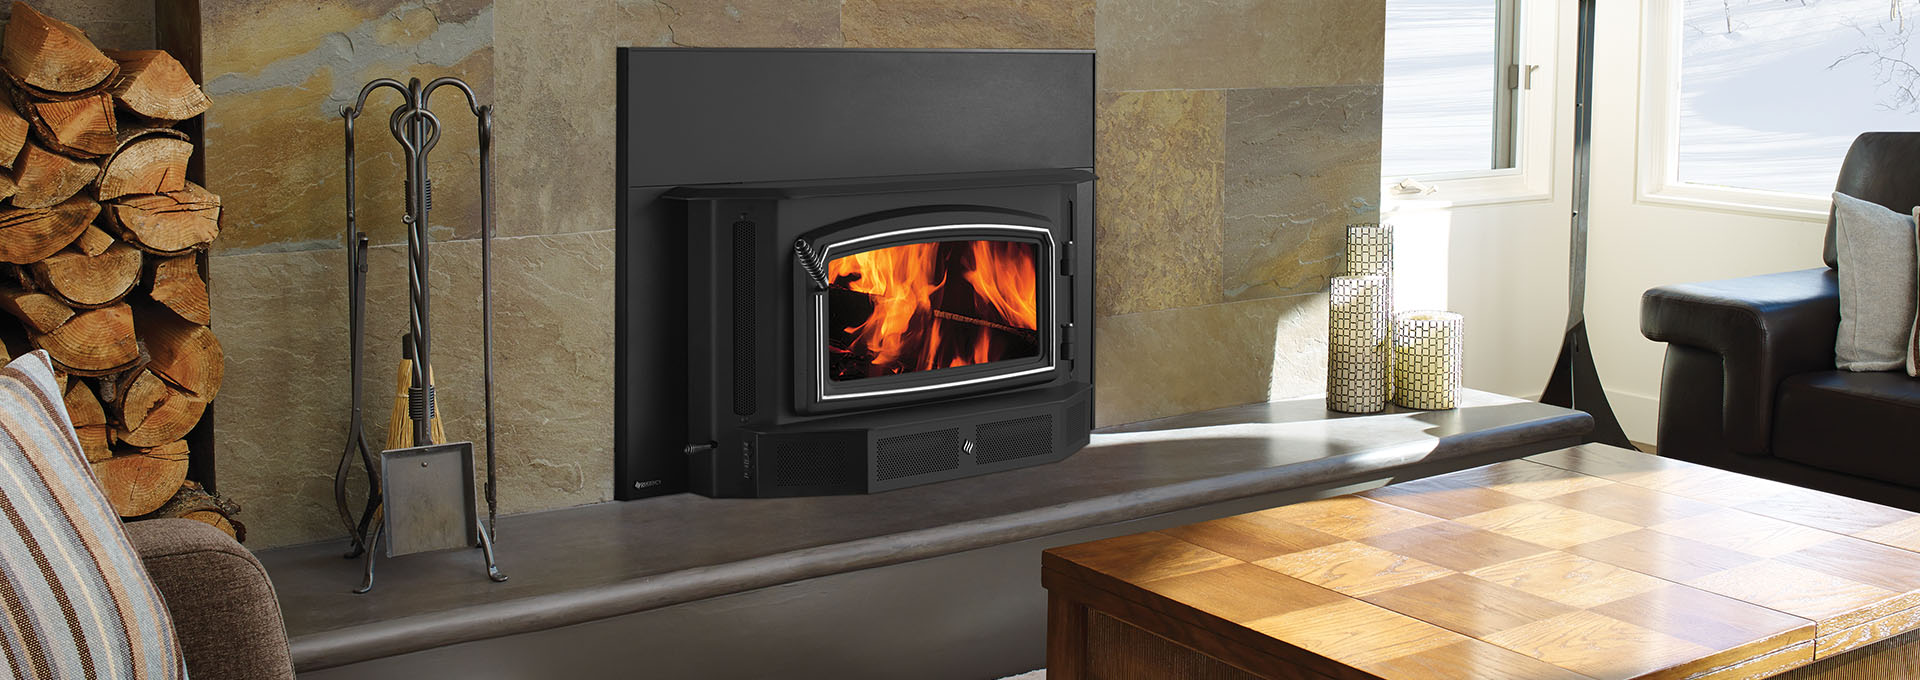 burning inserts fireplace century heating stove wood reviews insert